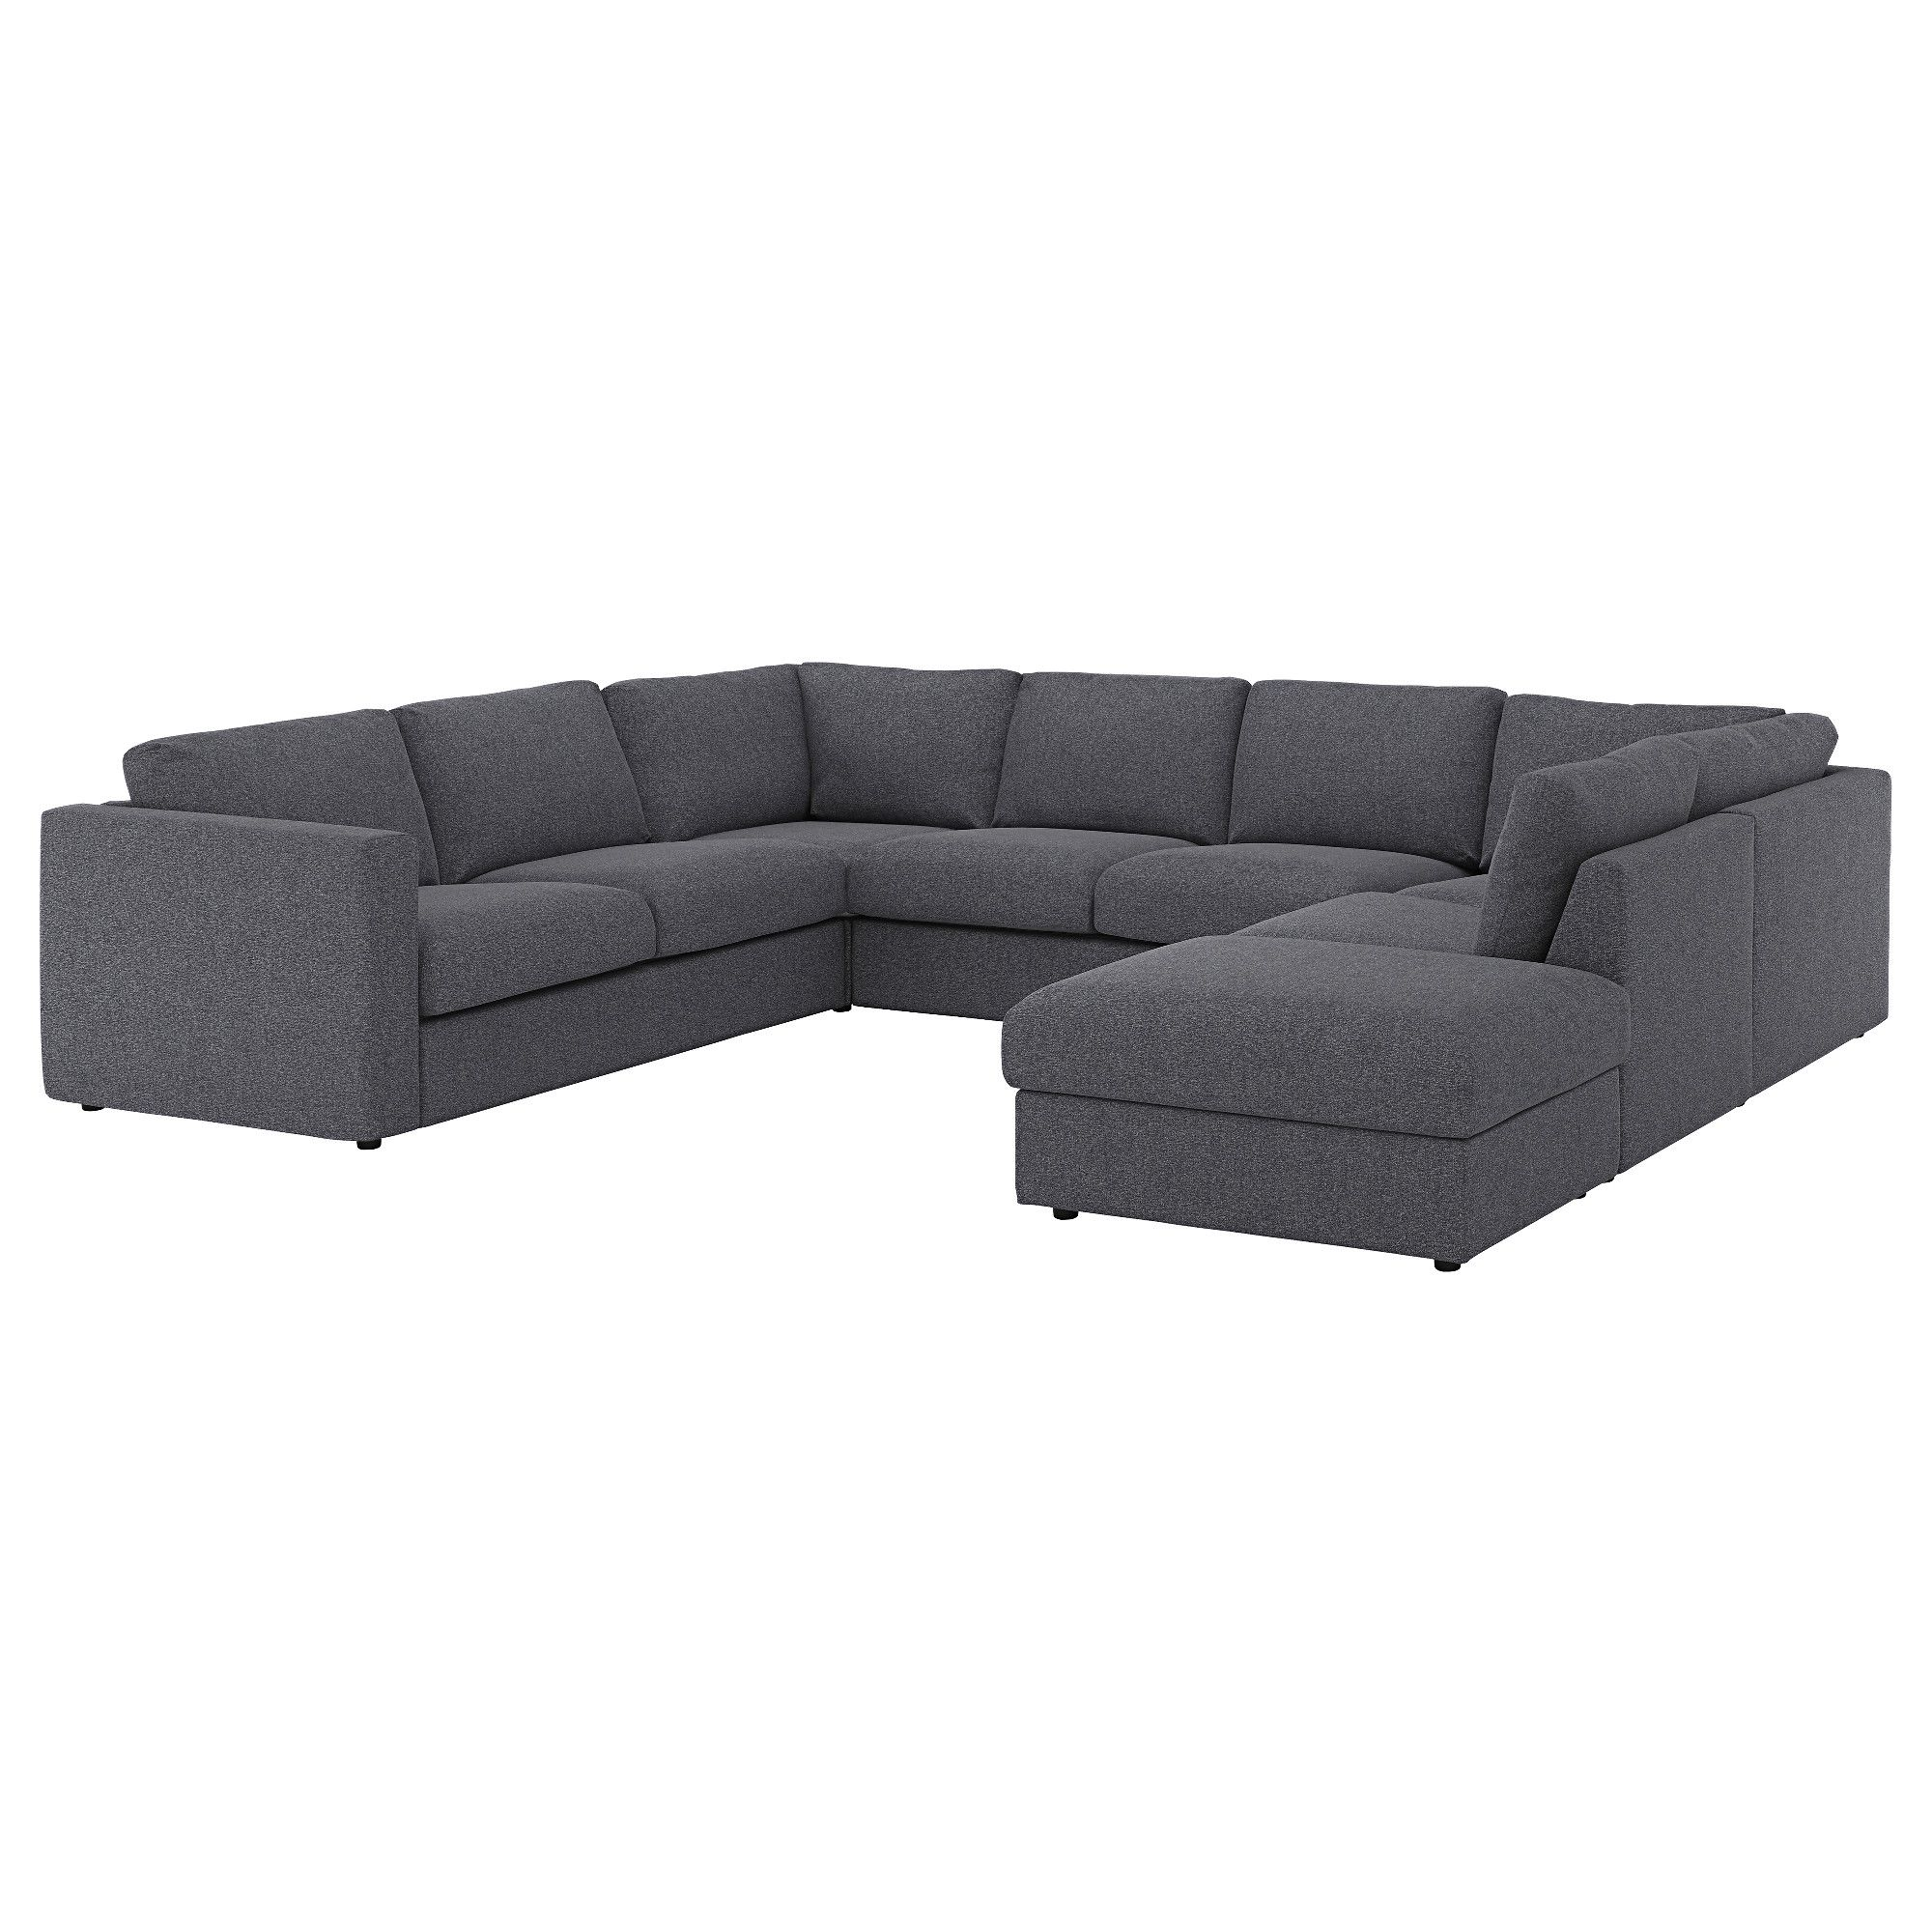 Furniture And Home Furnishings U Shaped Sofa Ikea Vimle Fabric Sofa